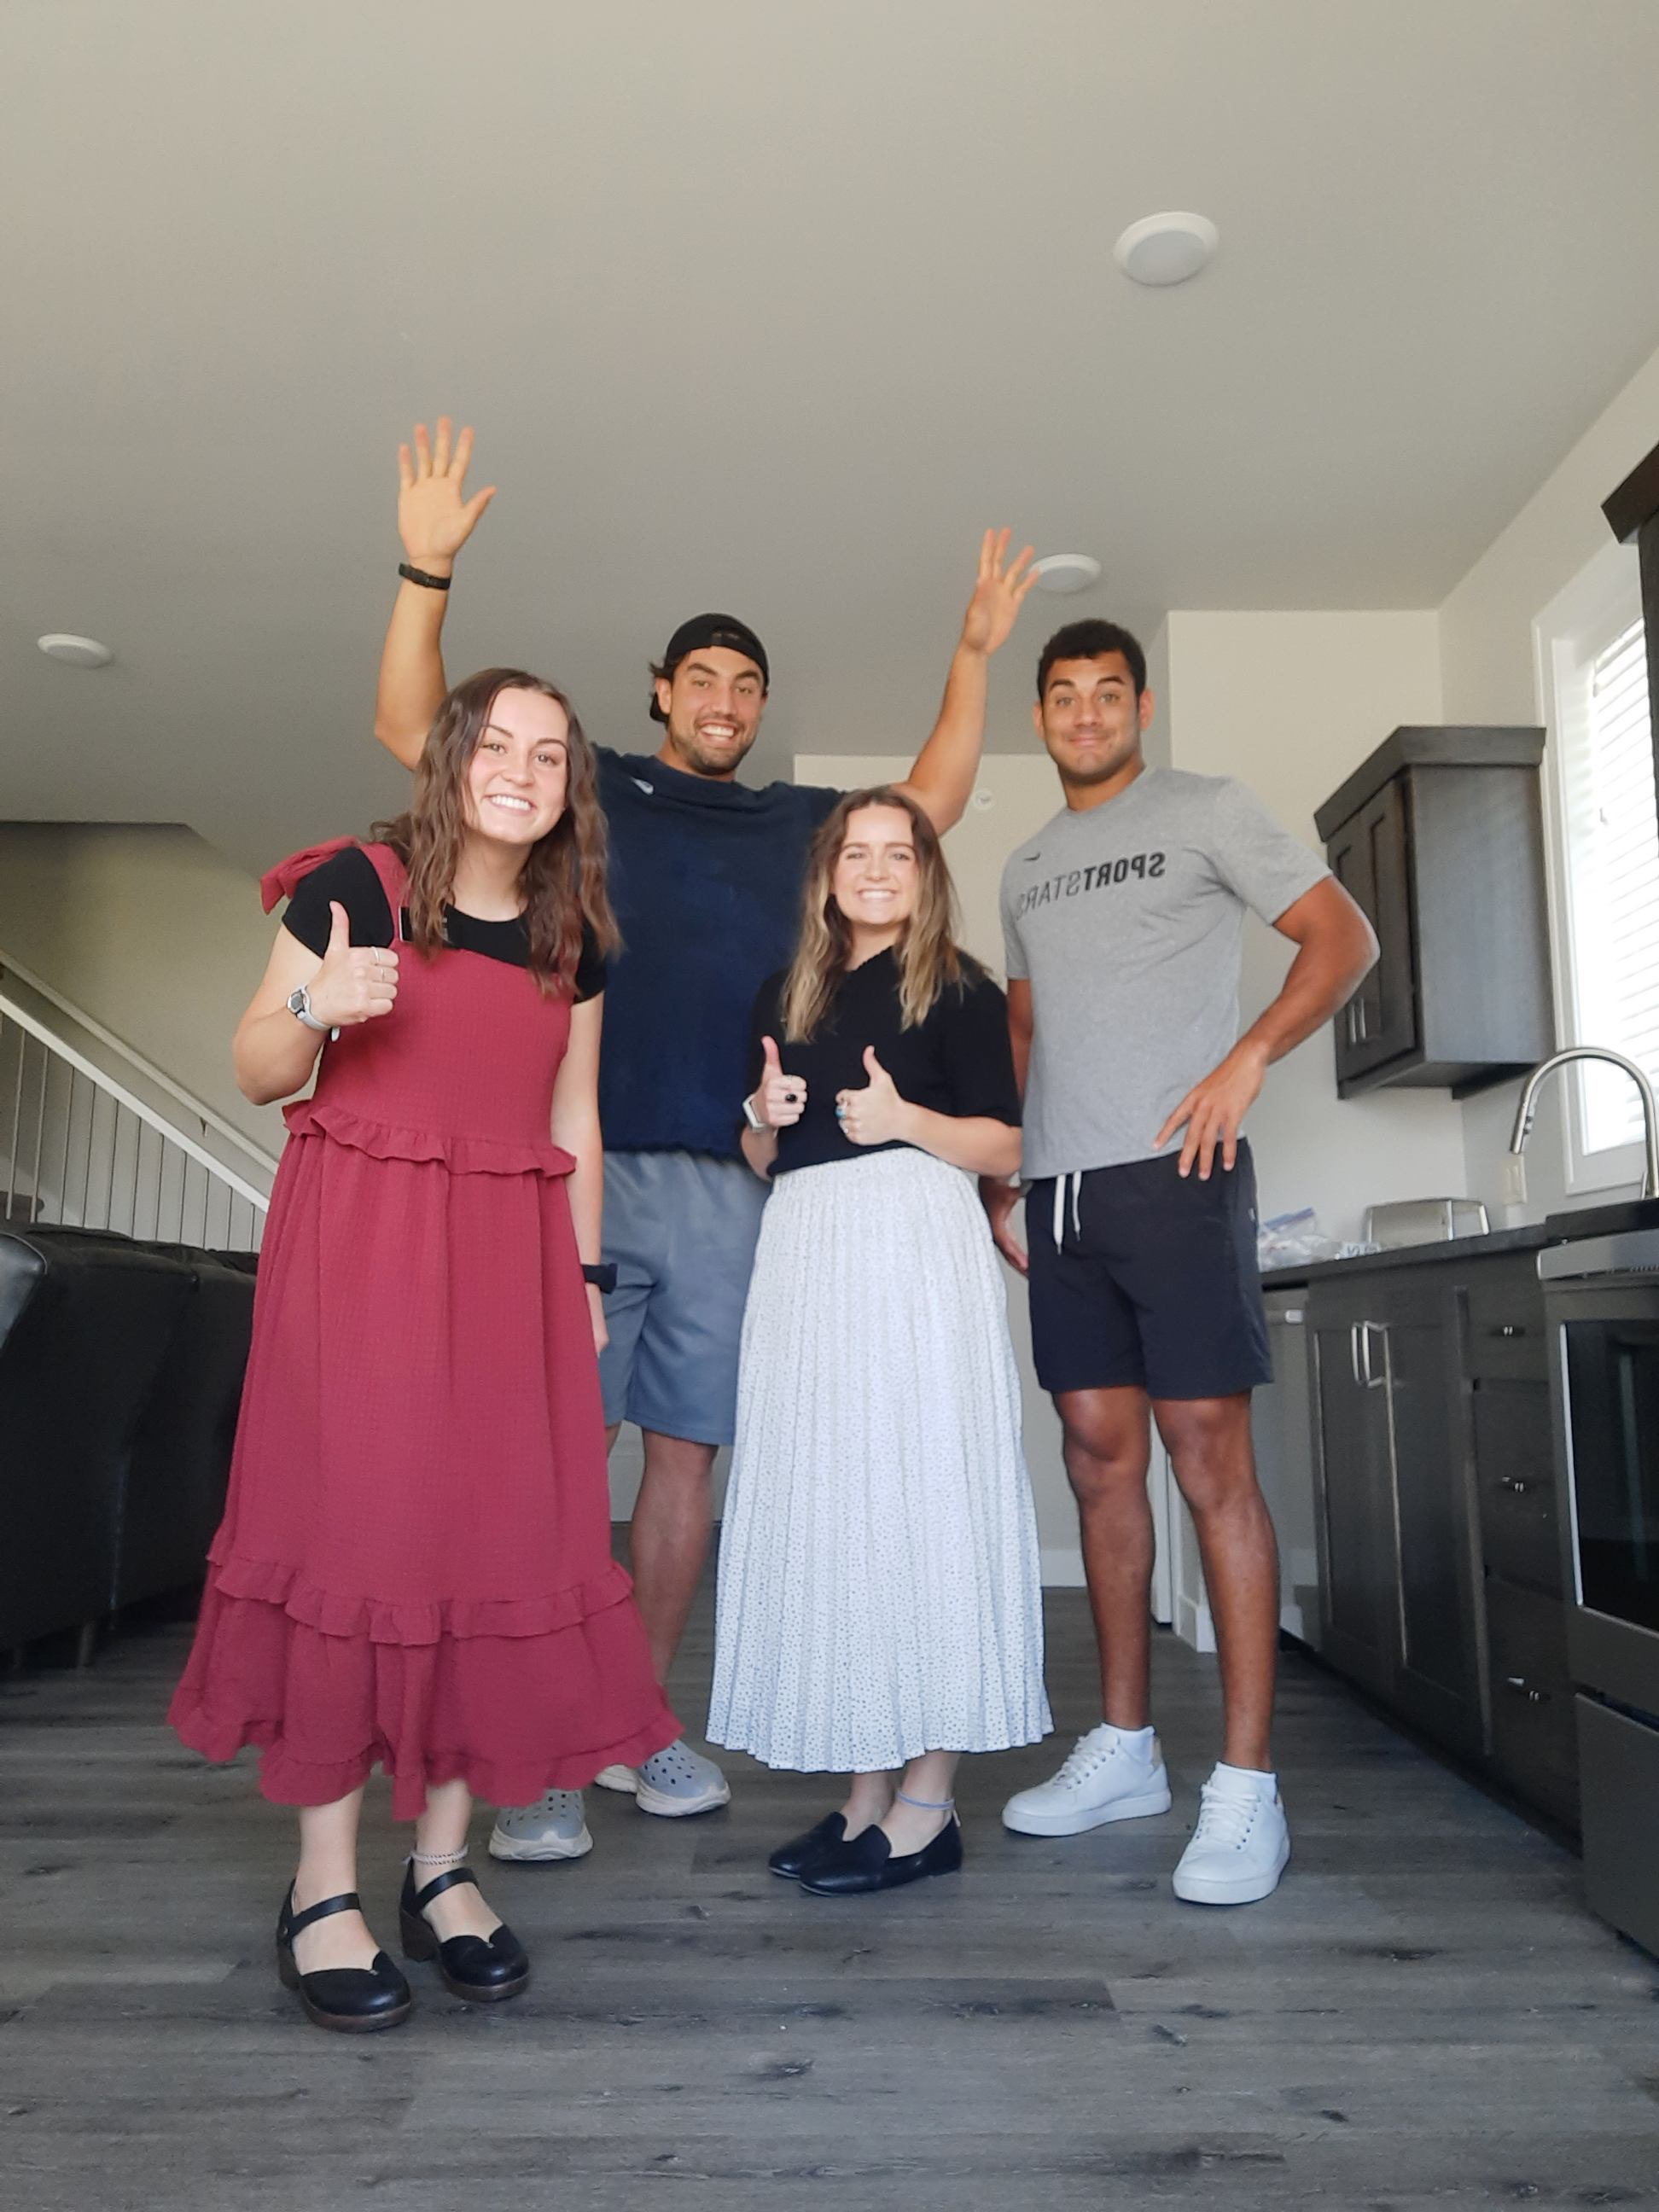 Green Bay teammates Bronson Kaufusi (hands raised) and Christian Uphoff meet with Latter-day Saint sister missionaries.